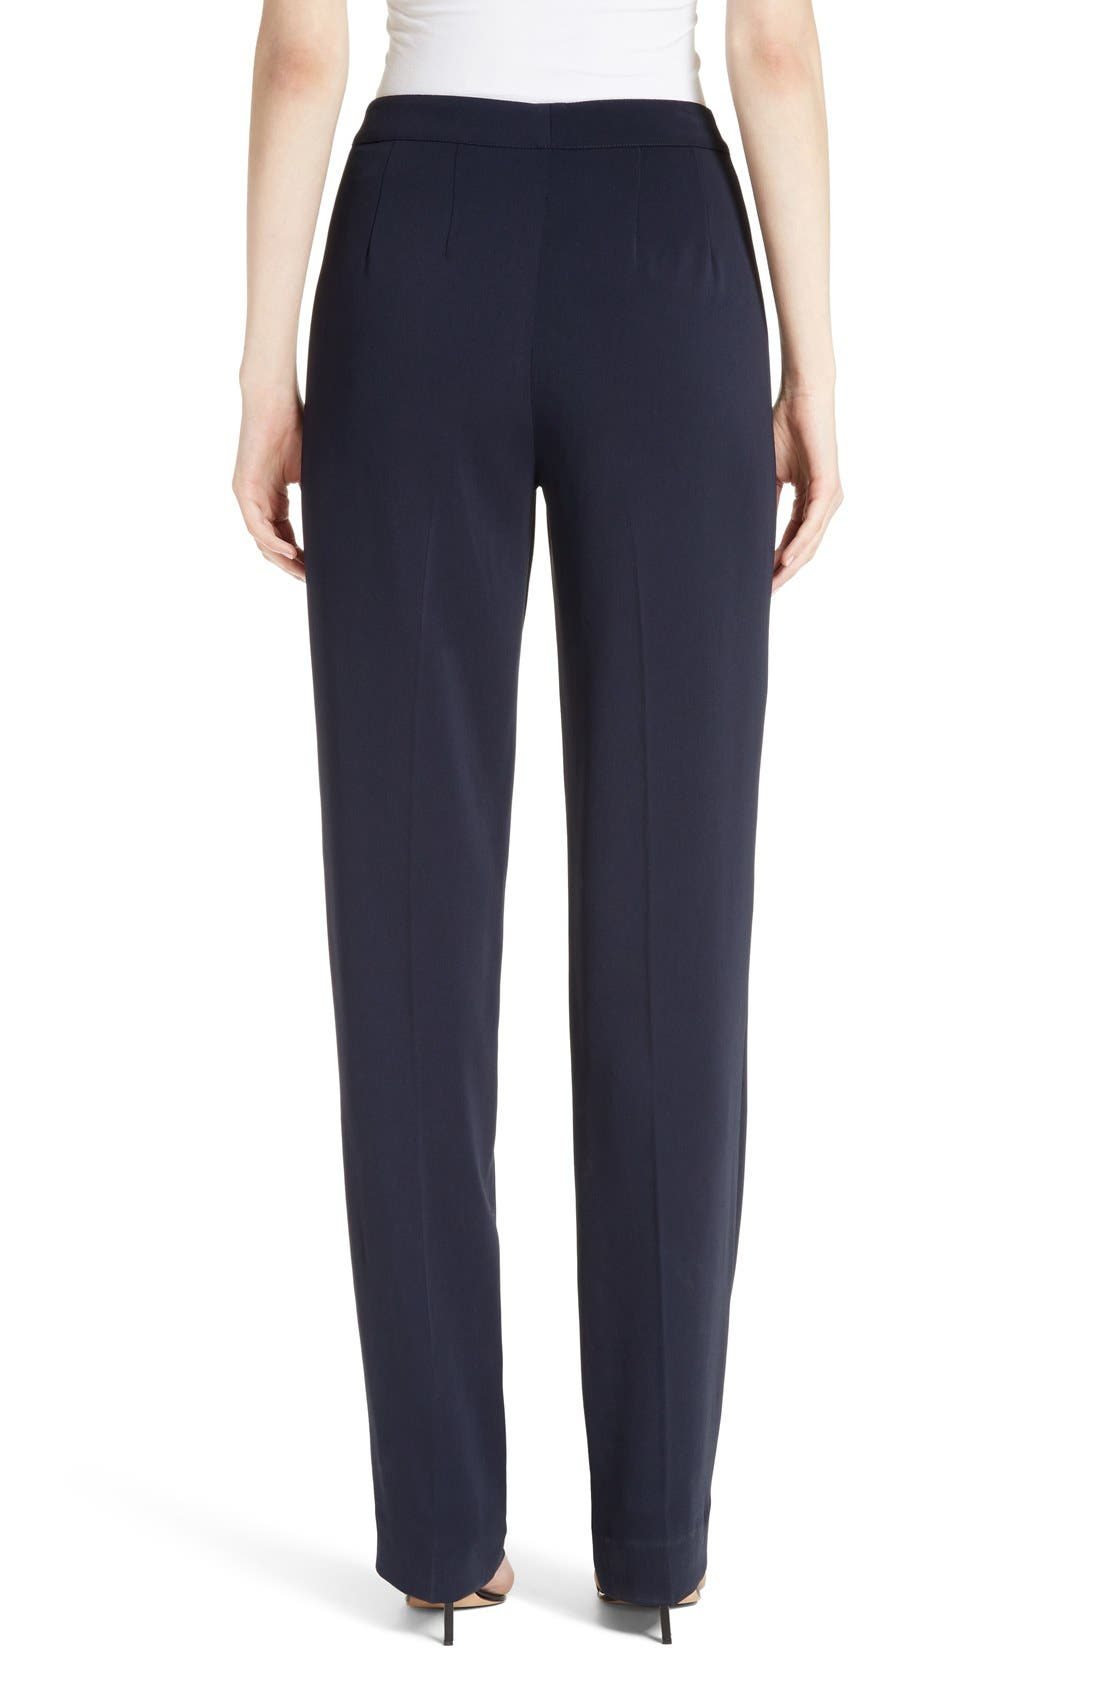 Diana Classic Cady Stretch Pants,                             Alternate thumbnail 6, color,                             NAVY